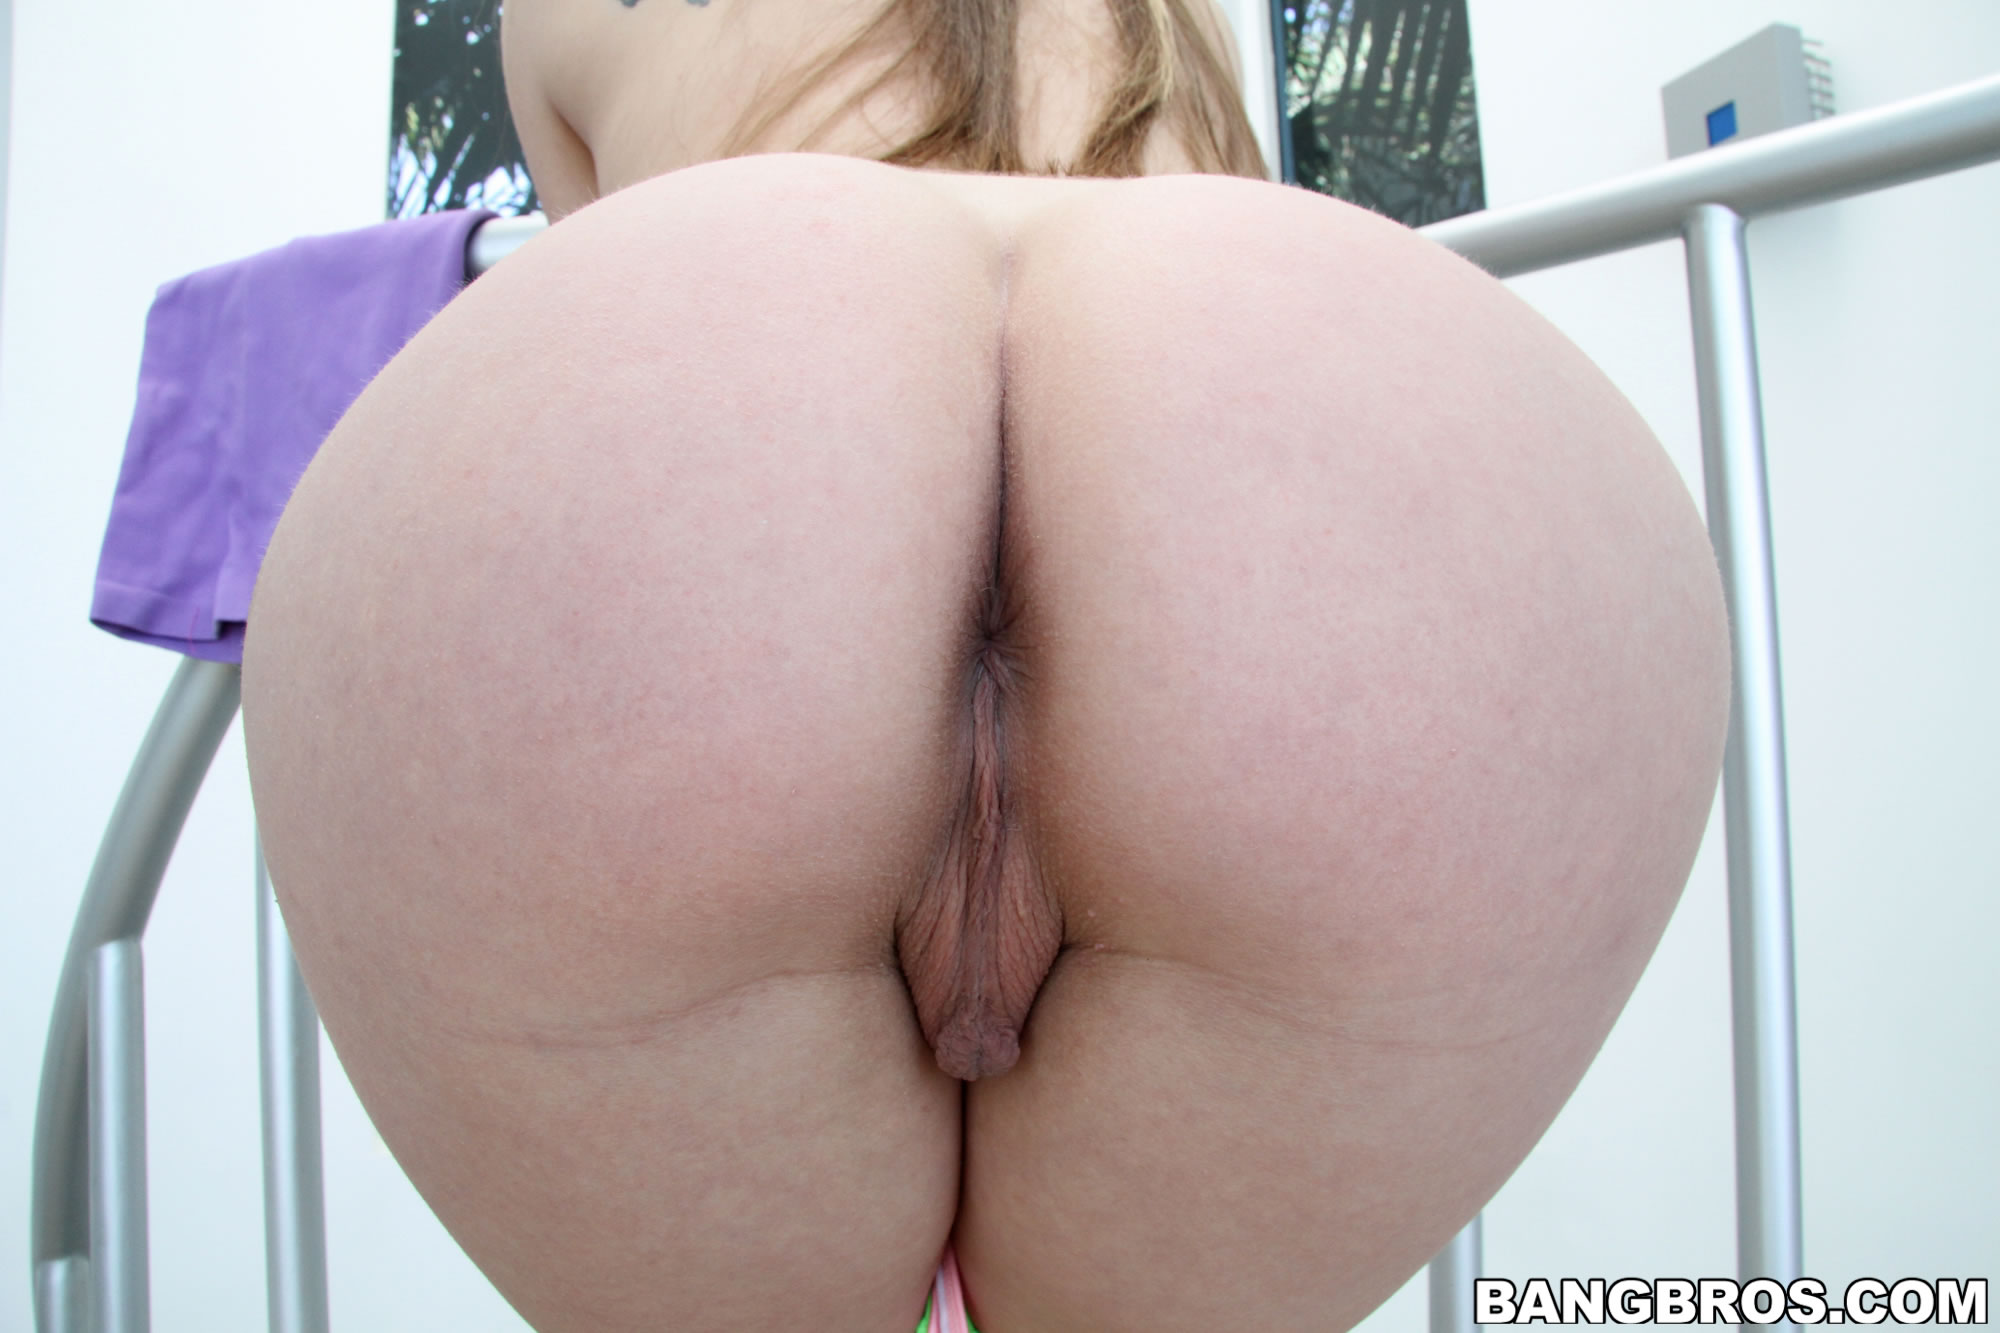 Latina bubble butt fucked real hard